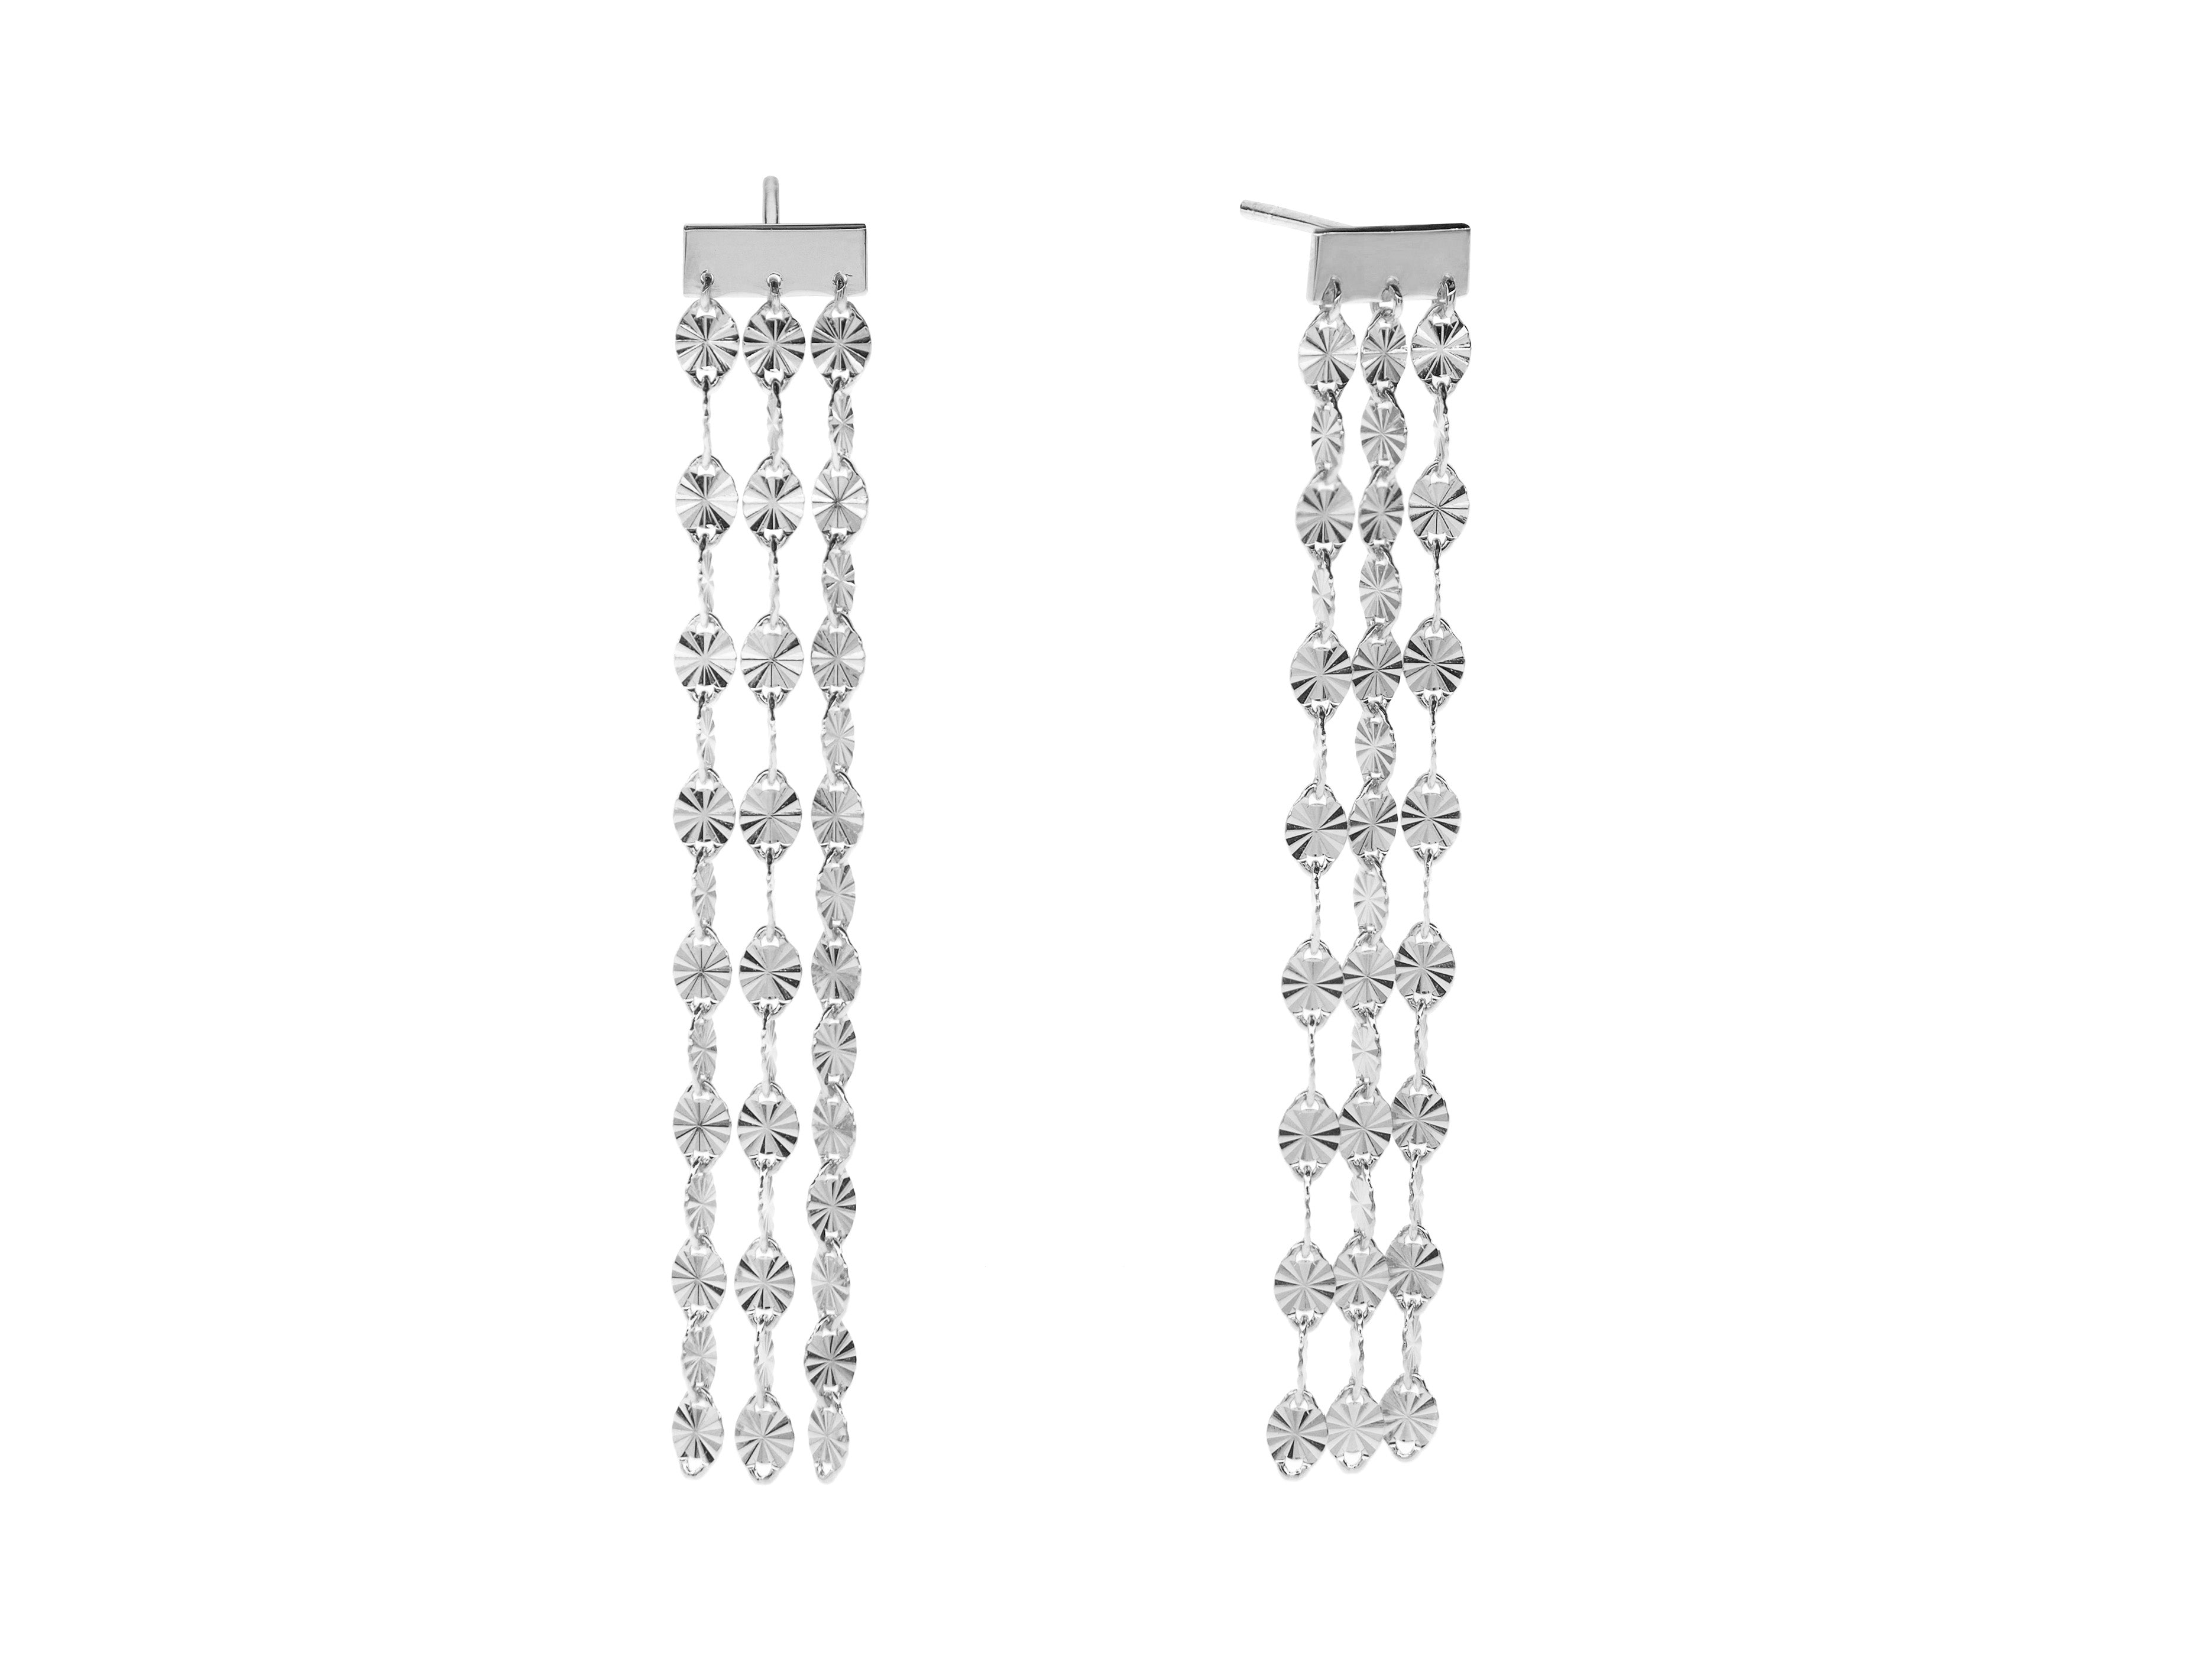 Juliet triple drop earrings, sterling silver, rhodium plated